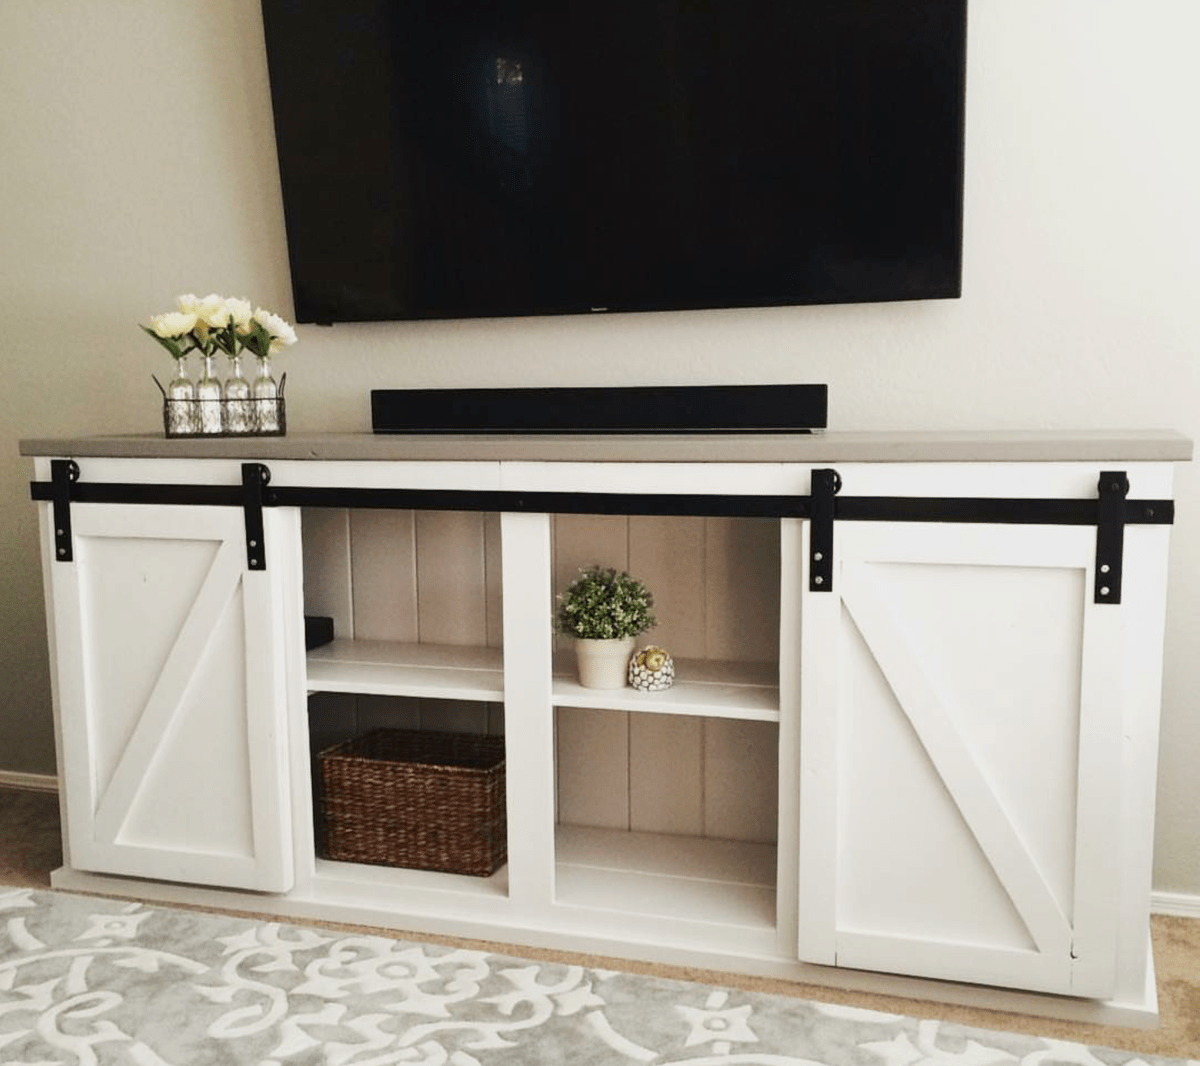 Ana White Sliding Door Console DIY Projects